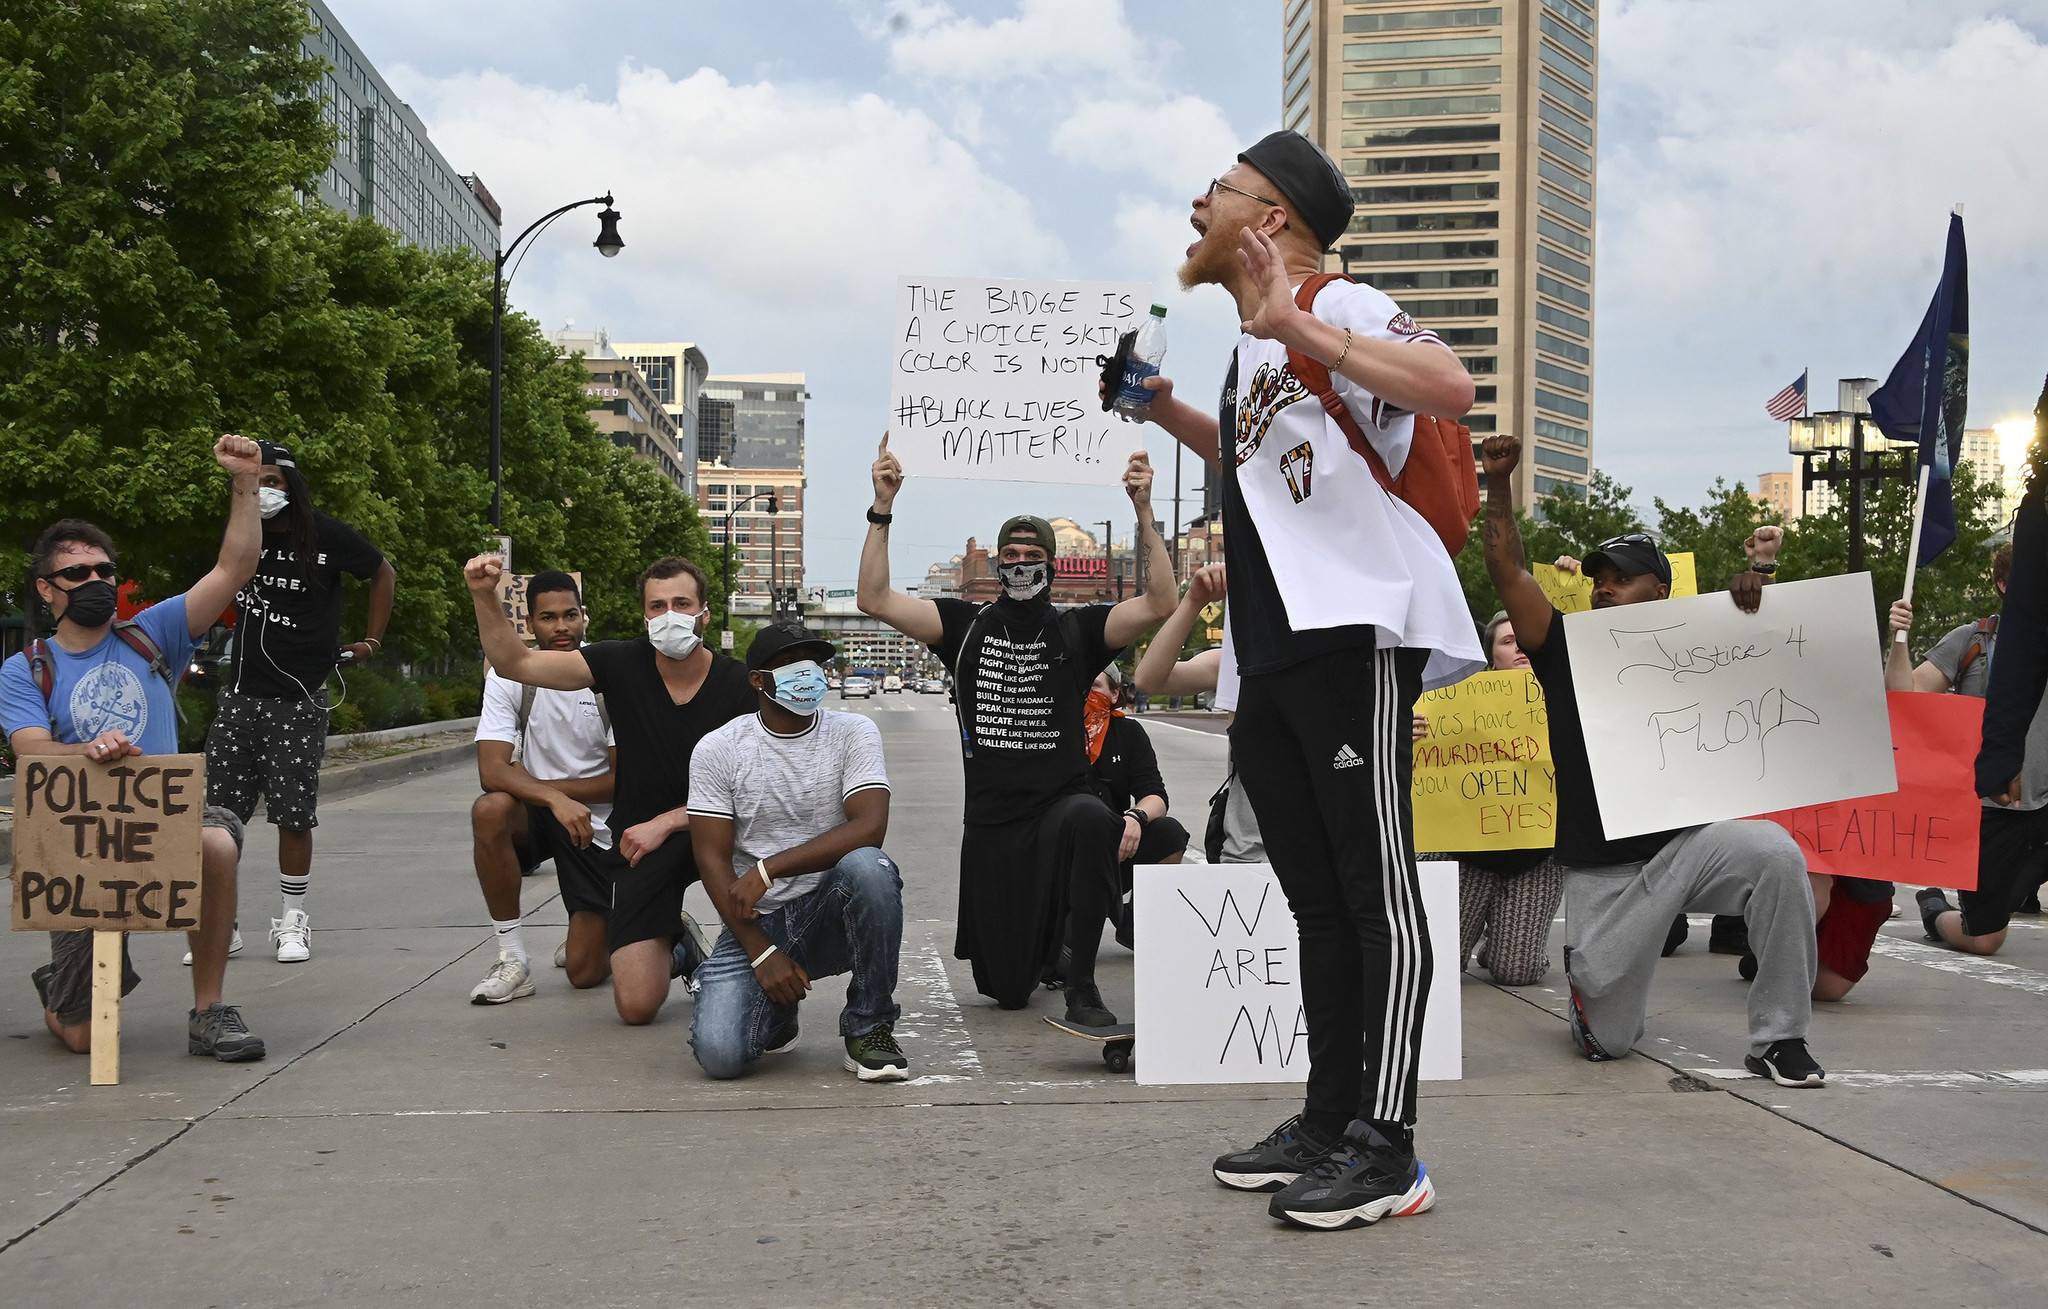 Black Lives Matter protestors in Baltimore Maryland following the death of George Floyd. Credit: The Baltimore Sun.